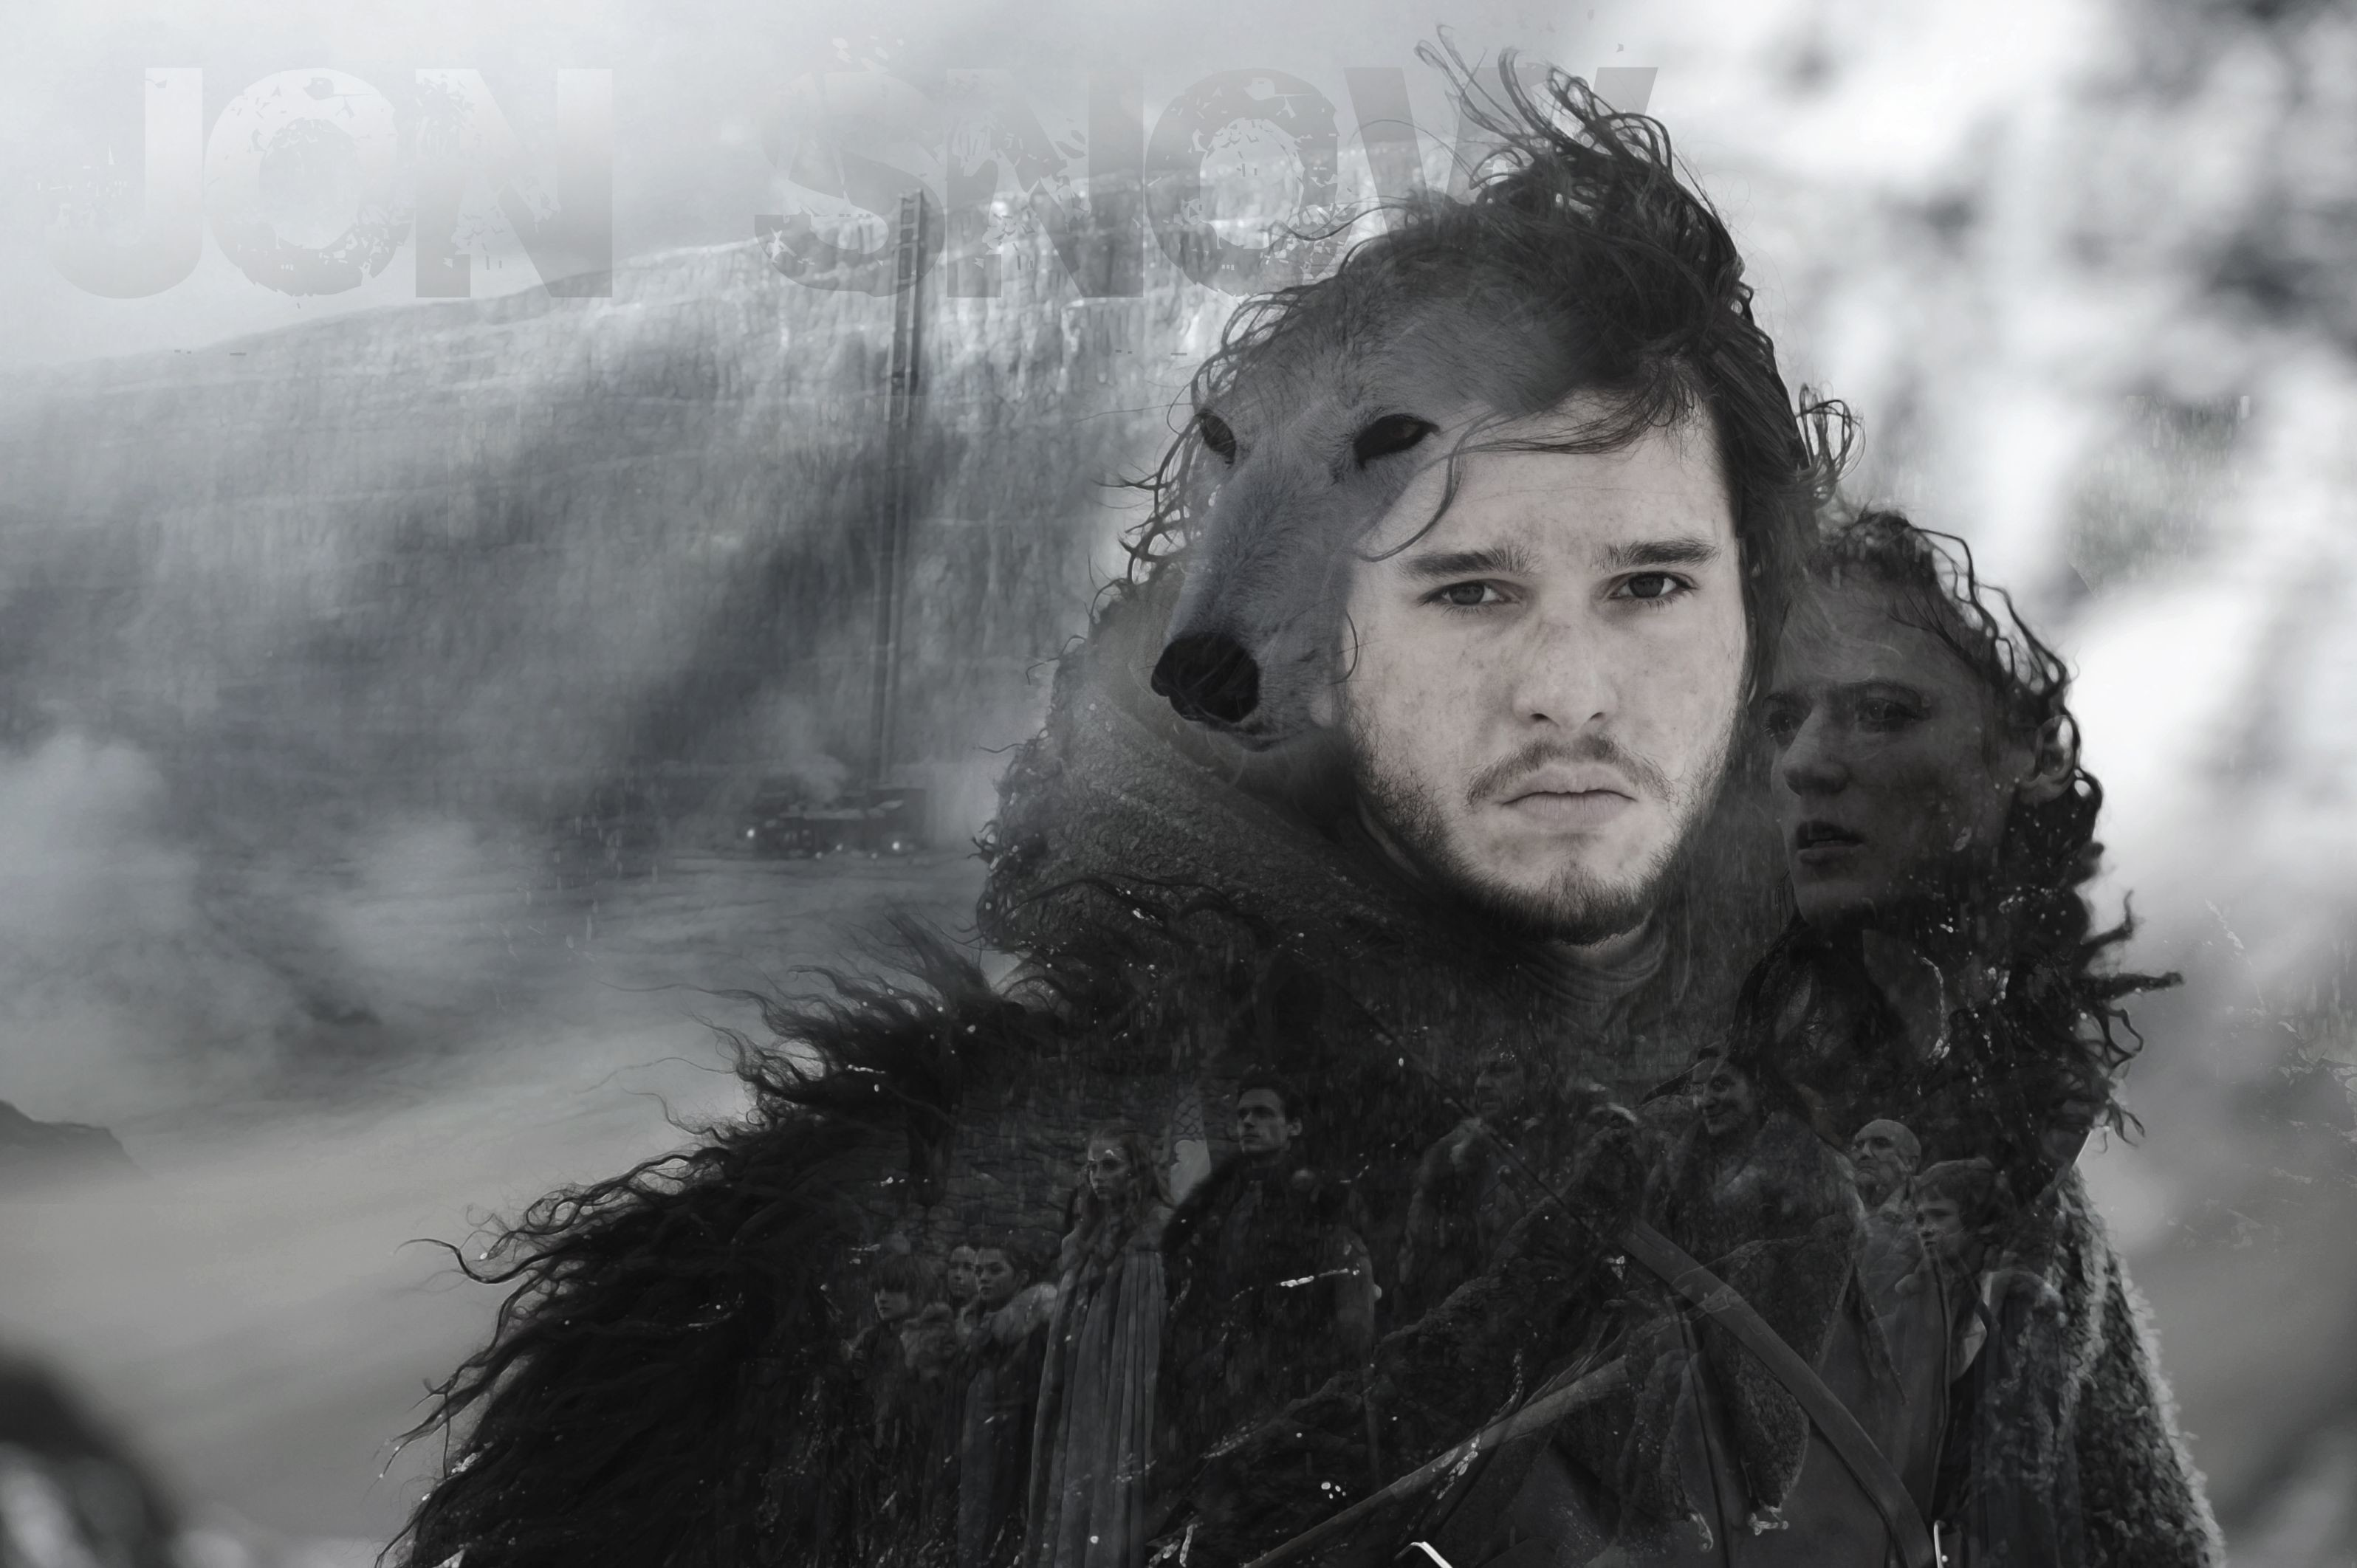 Res: 3192x2124, No Spoilers[No Spoilers][Wallpaper] A rather simple but effective Jon Snow  wallpaper I put together.